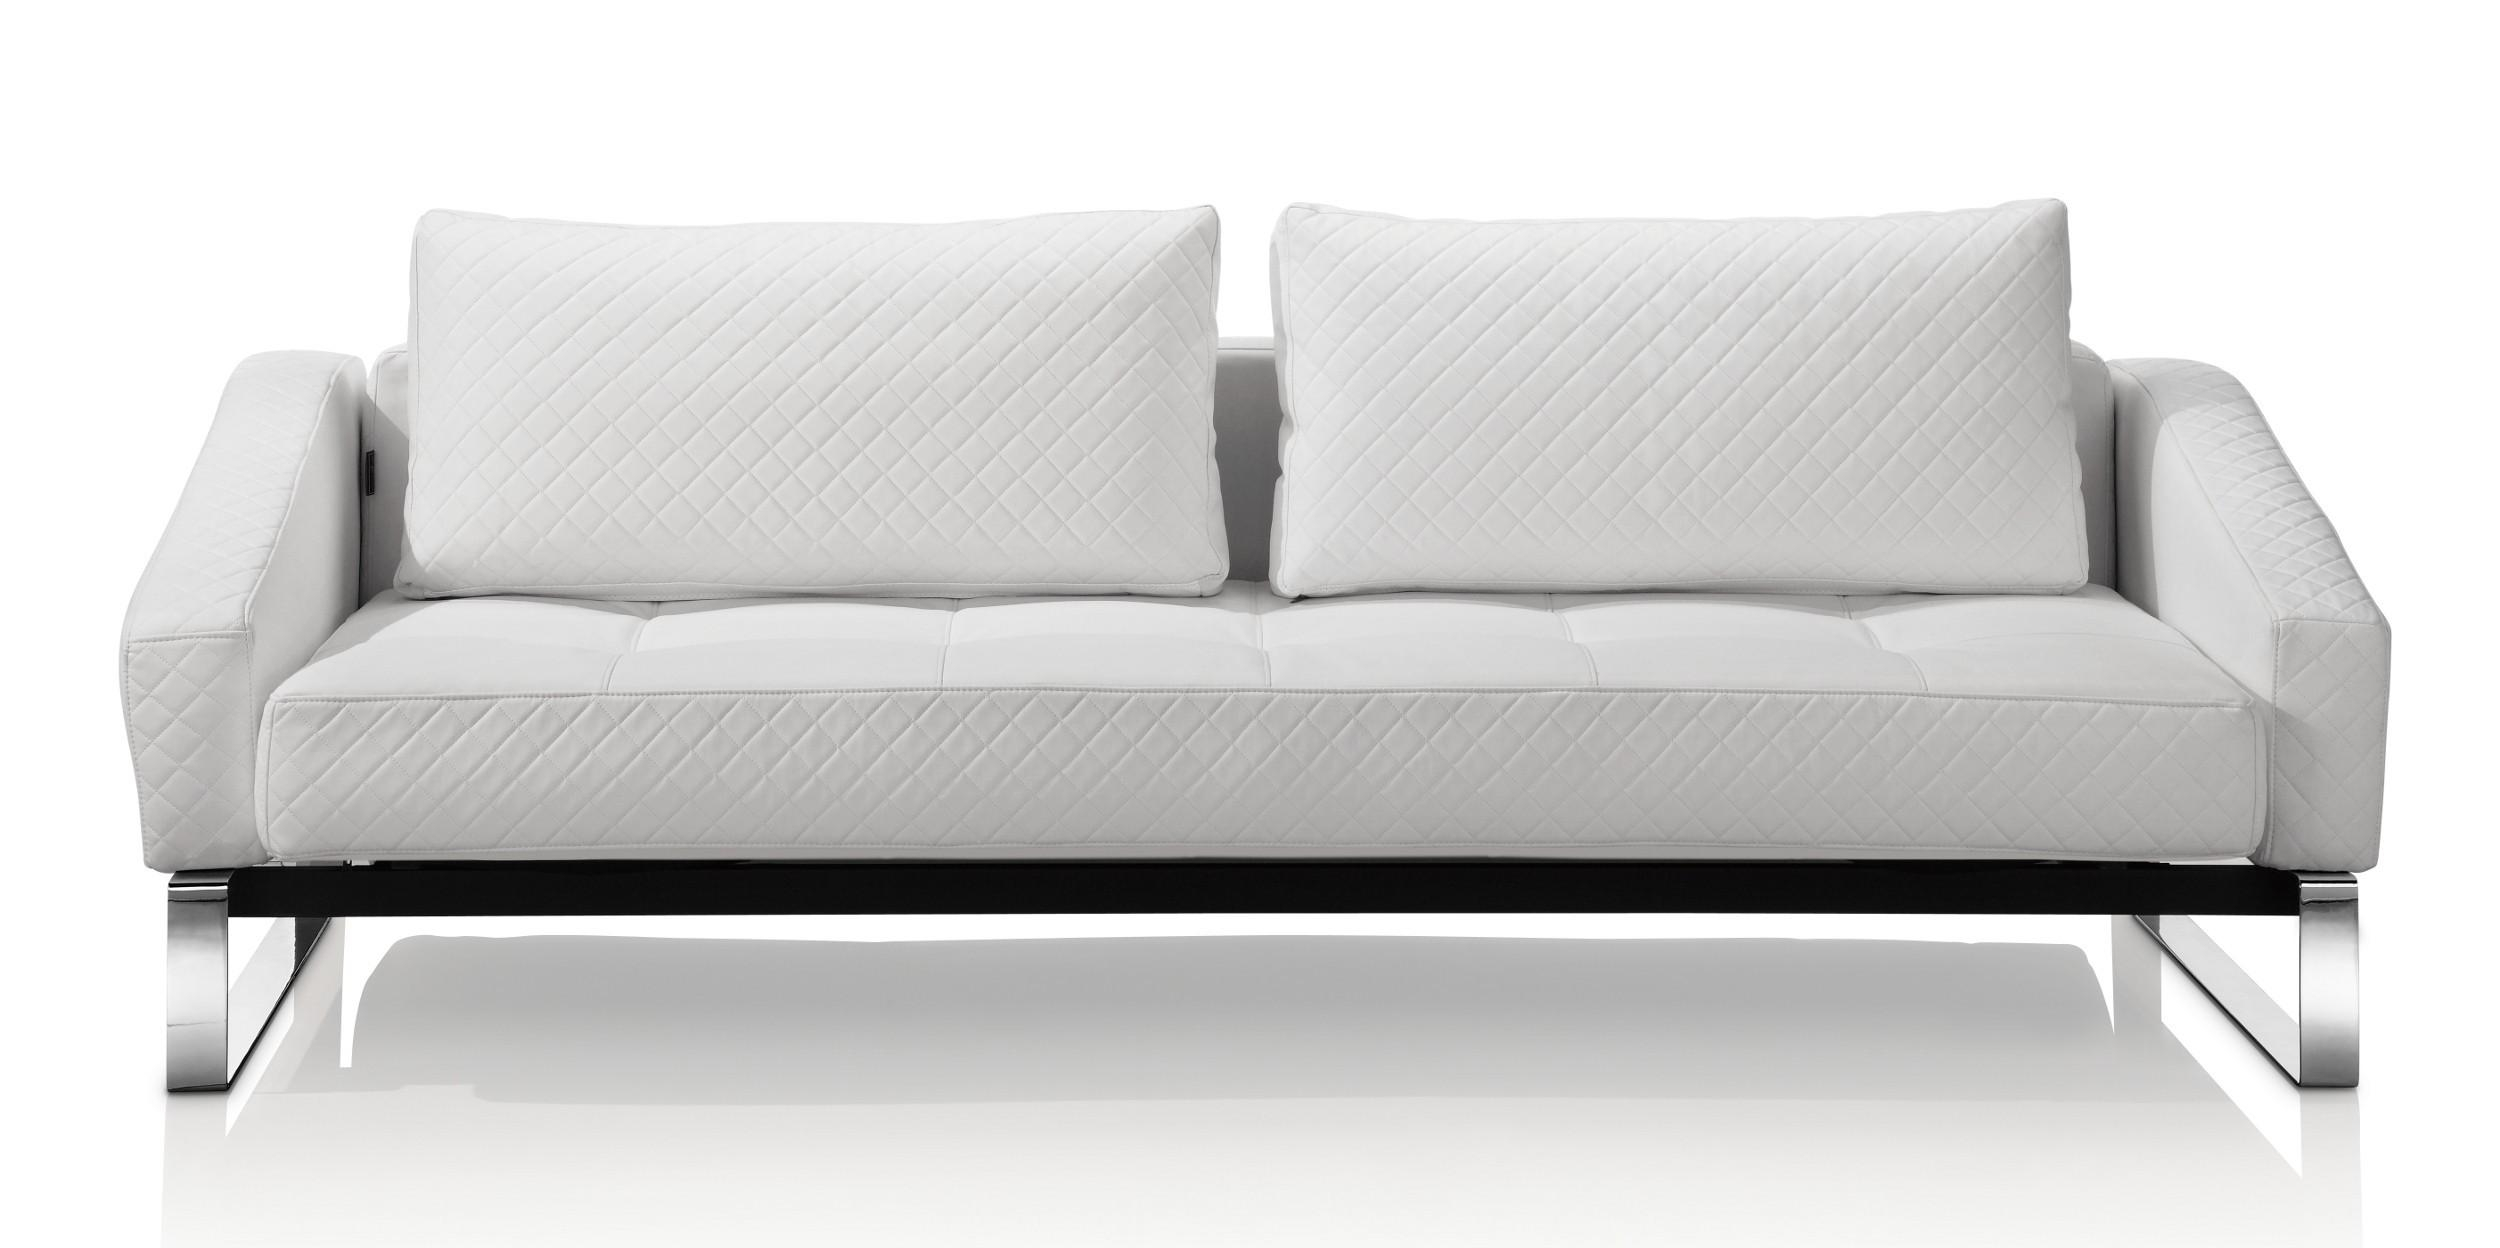 Furniture : Contemporary Sofa Chair Furniture For Modern Living With Regard To Contemporary Sofa Chairs (Image 11 of 20)